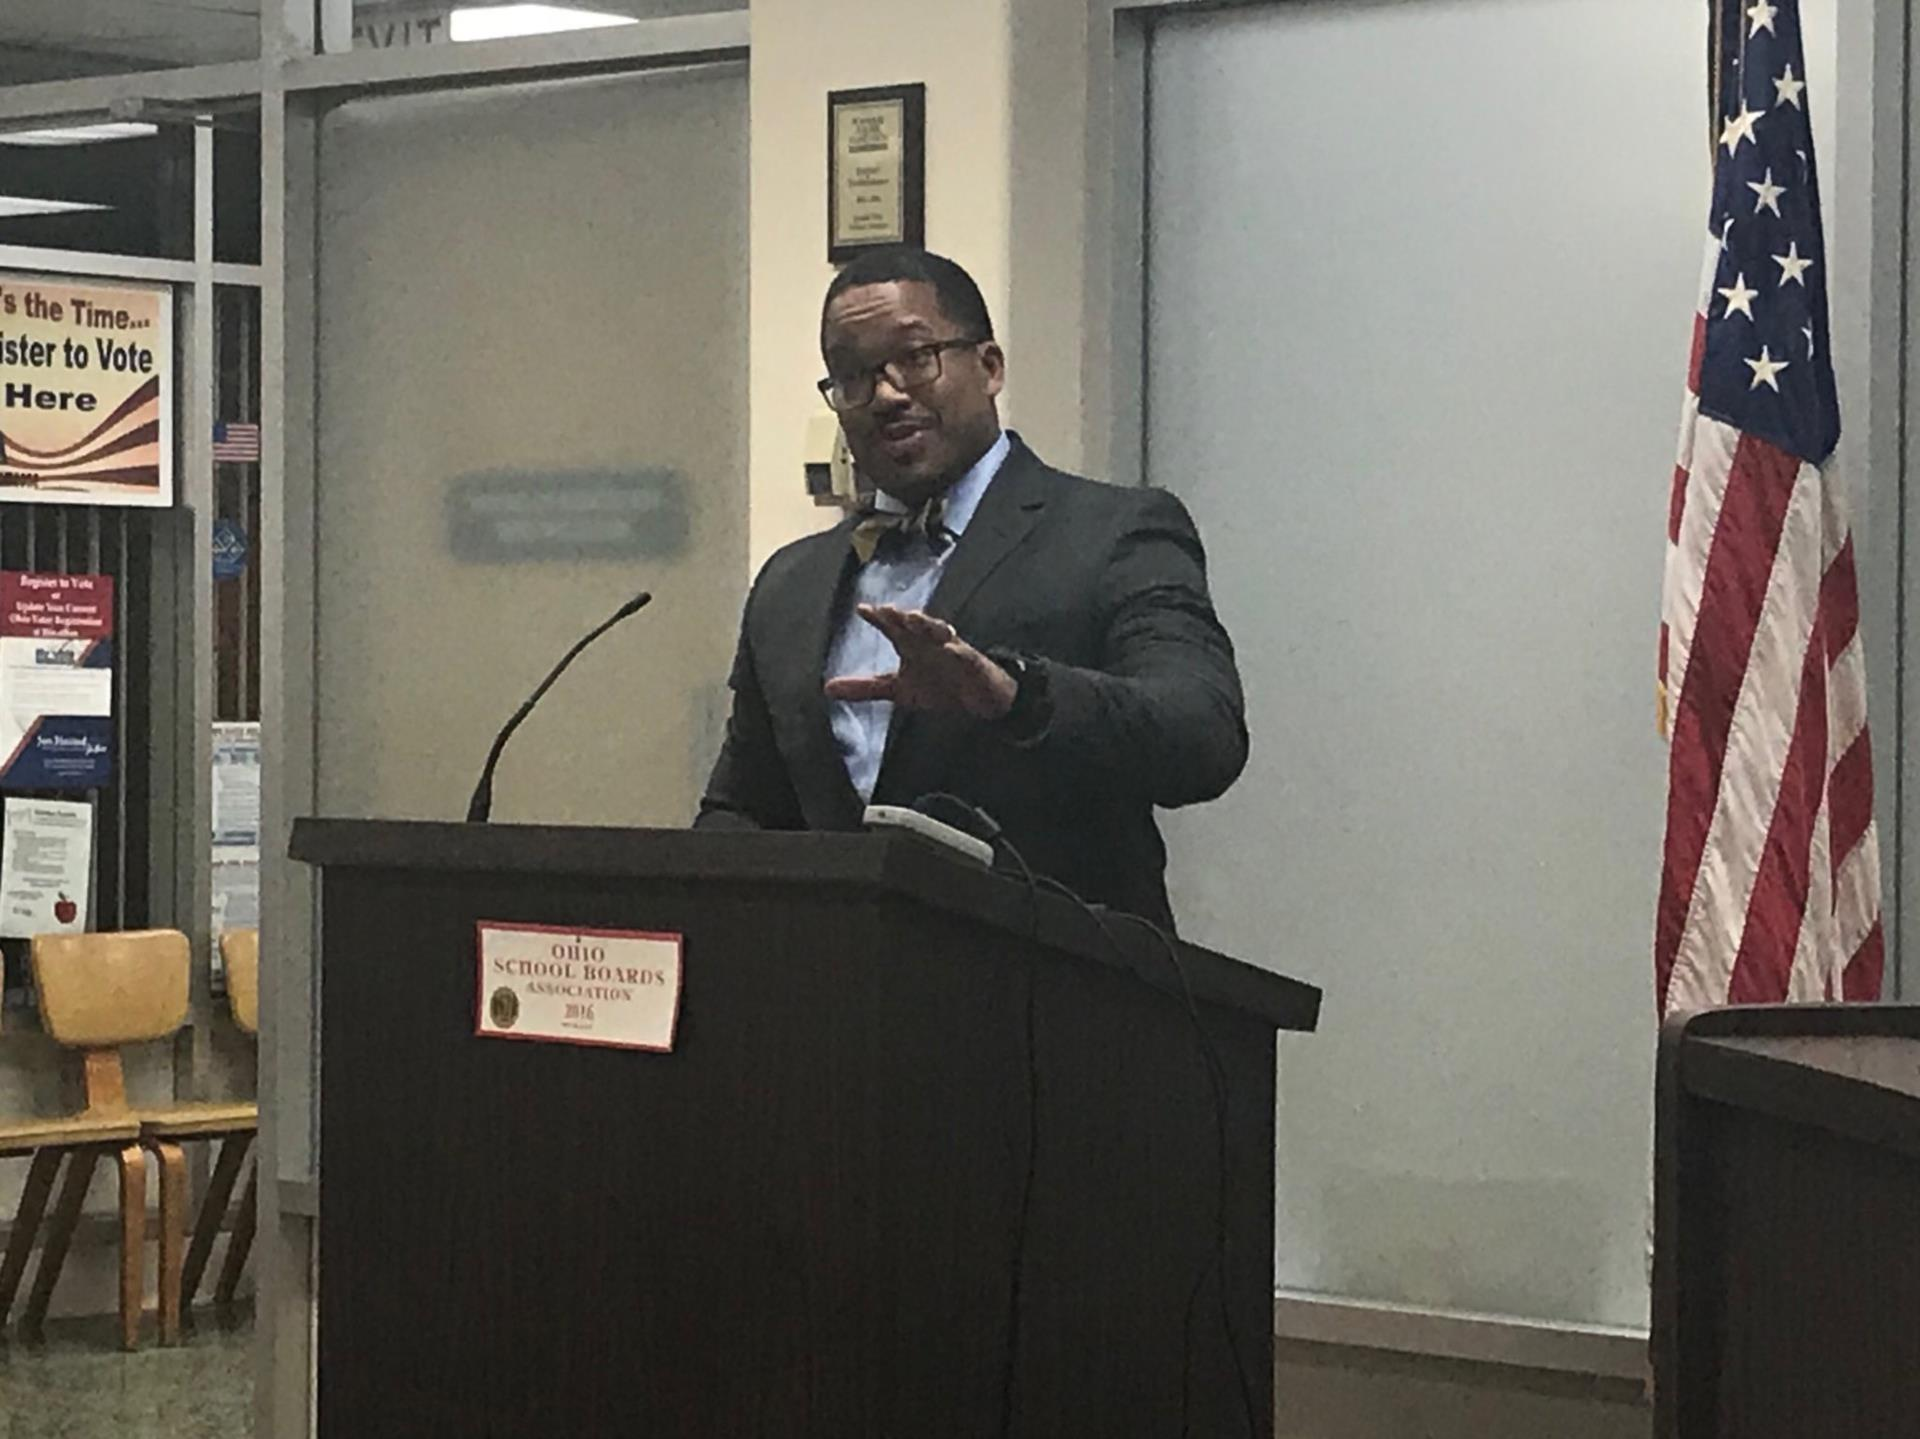 Mr. Marvin B. Jones, II accepts new position as Superintendent of Euclid Schools